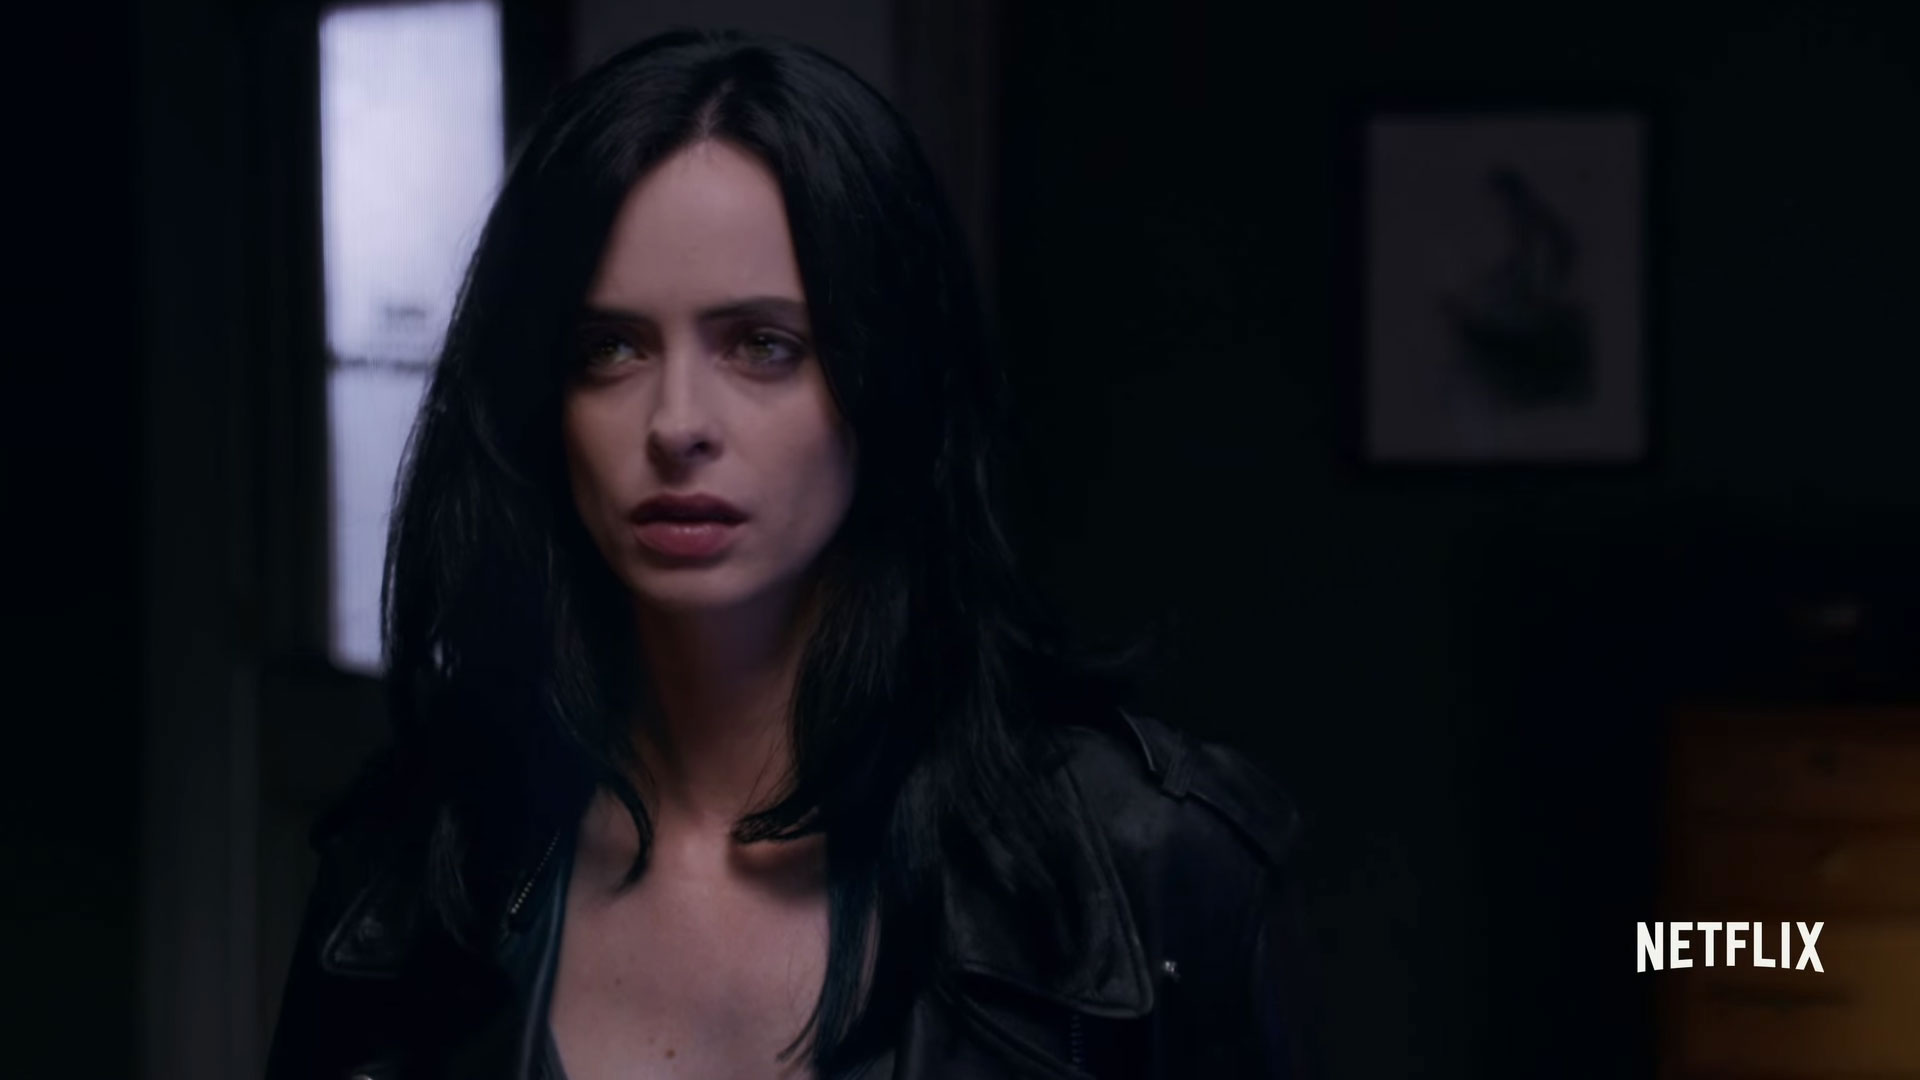 Get ready to be majorly creeped out by Netflix's latest trailer for Marvel's Jessica Jones